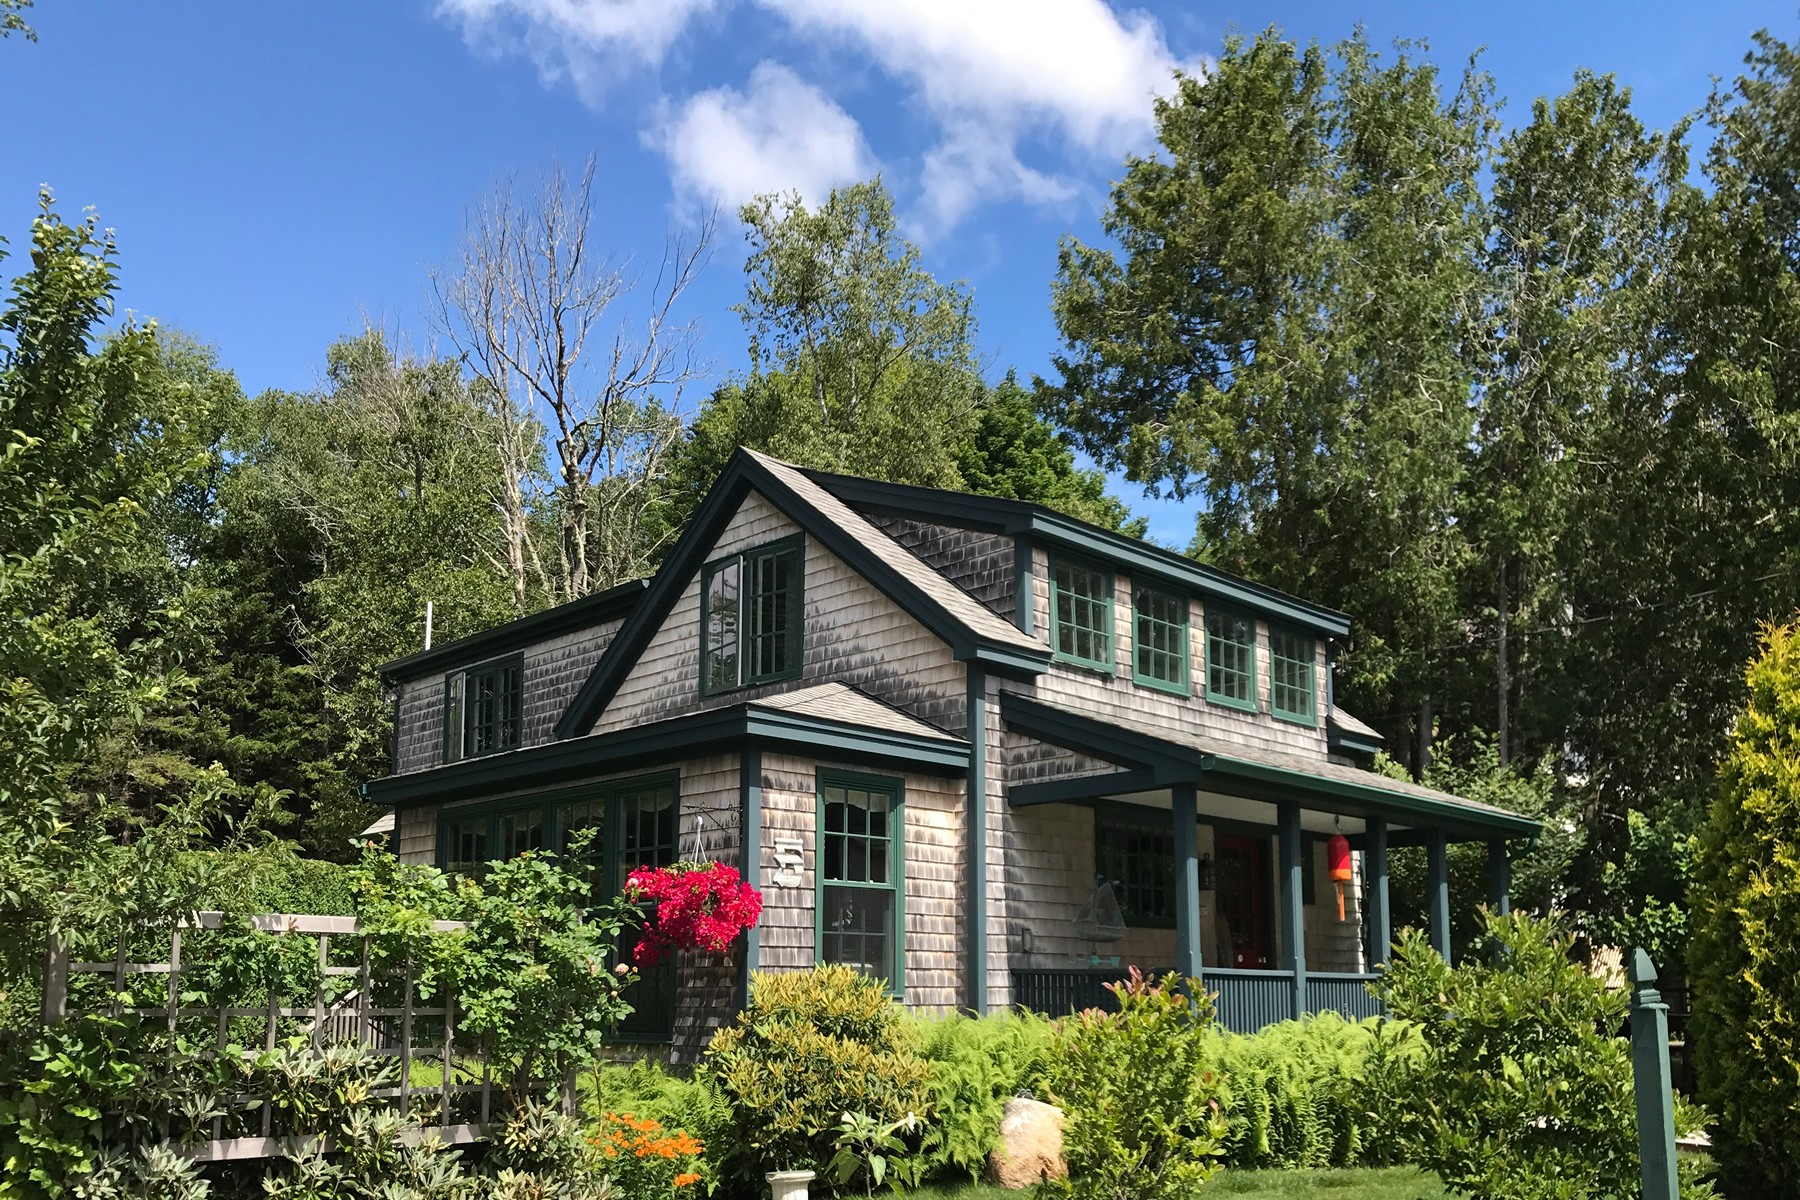 Single Family Home for Sale at Sow's Ear 5 Spruce Road, Northeast Harbor, Maine, 04662 United States